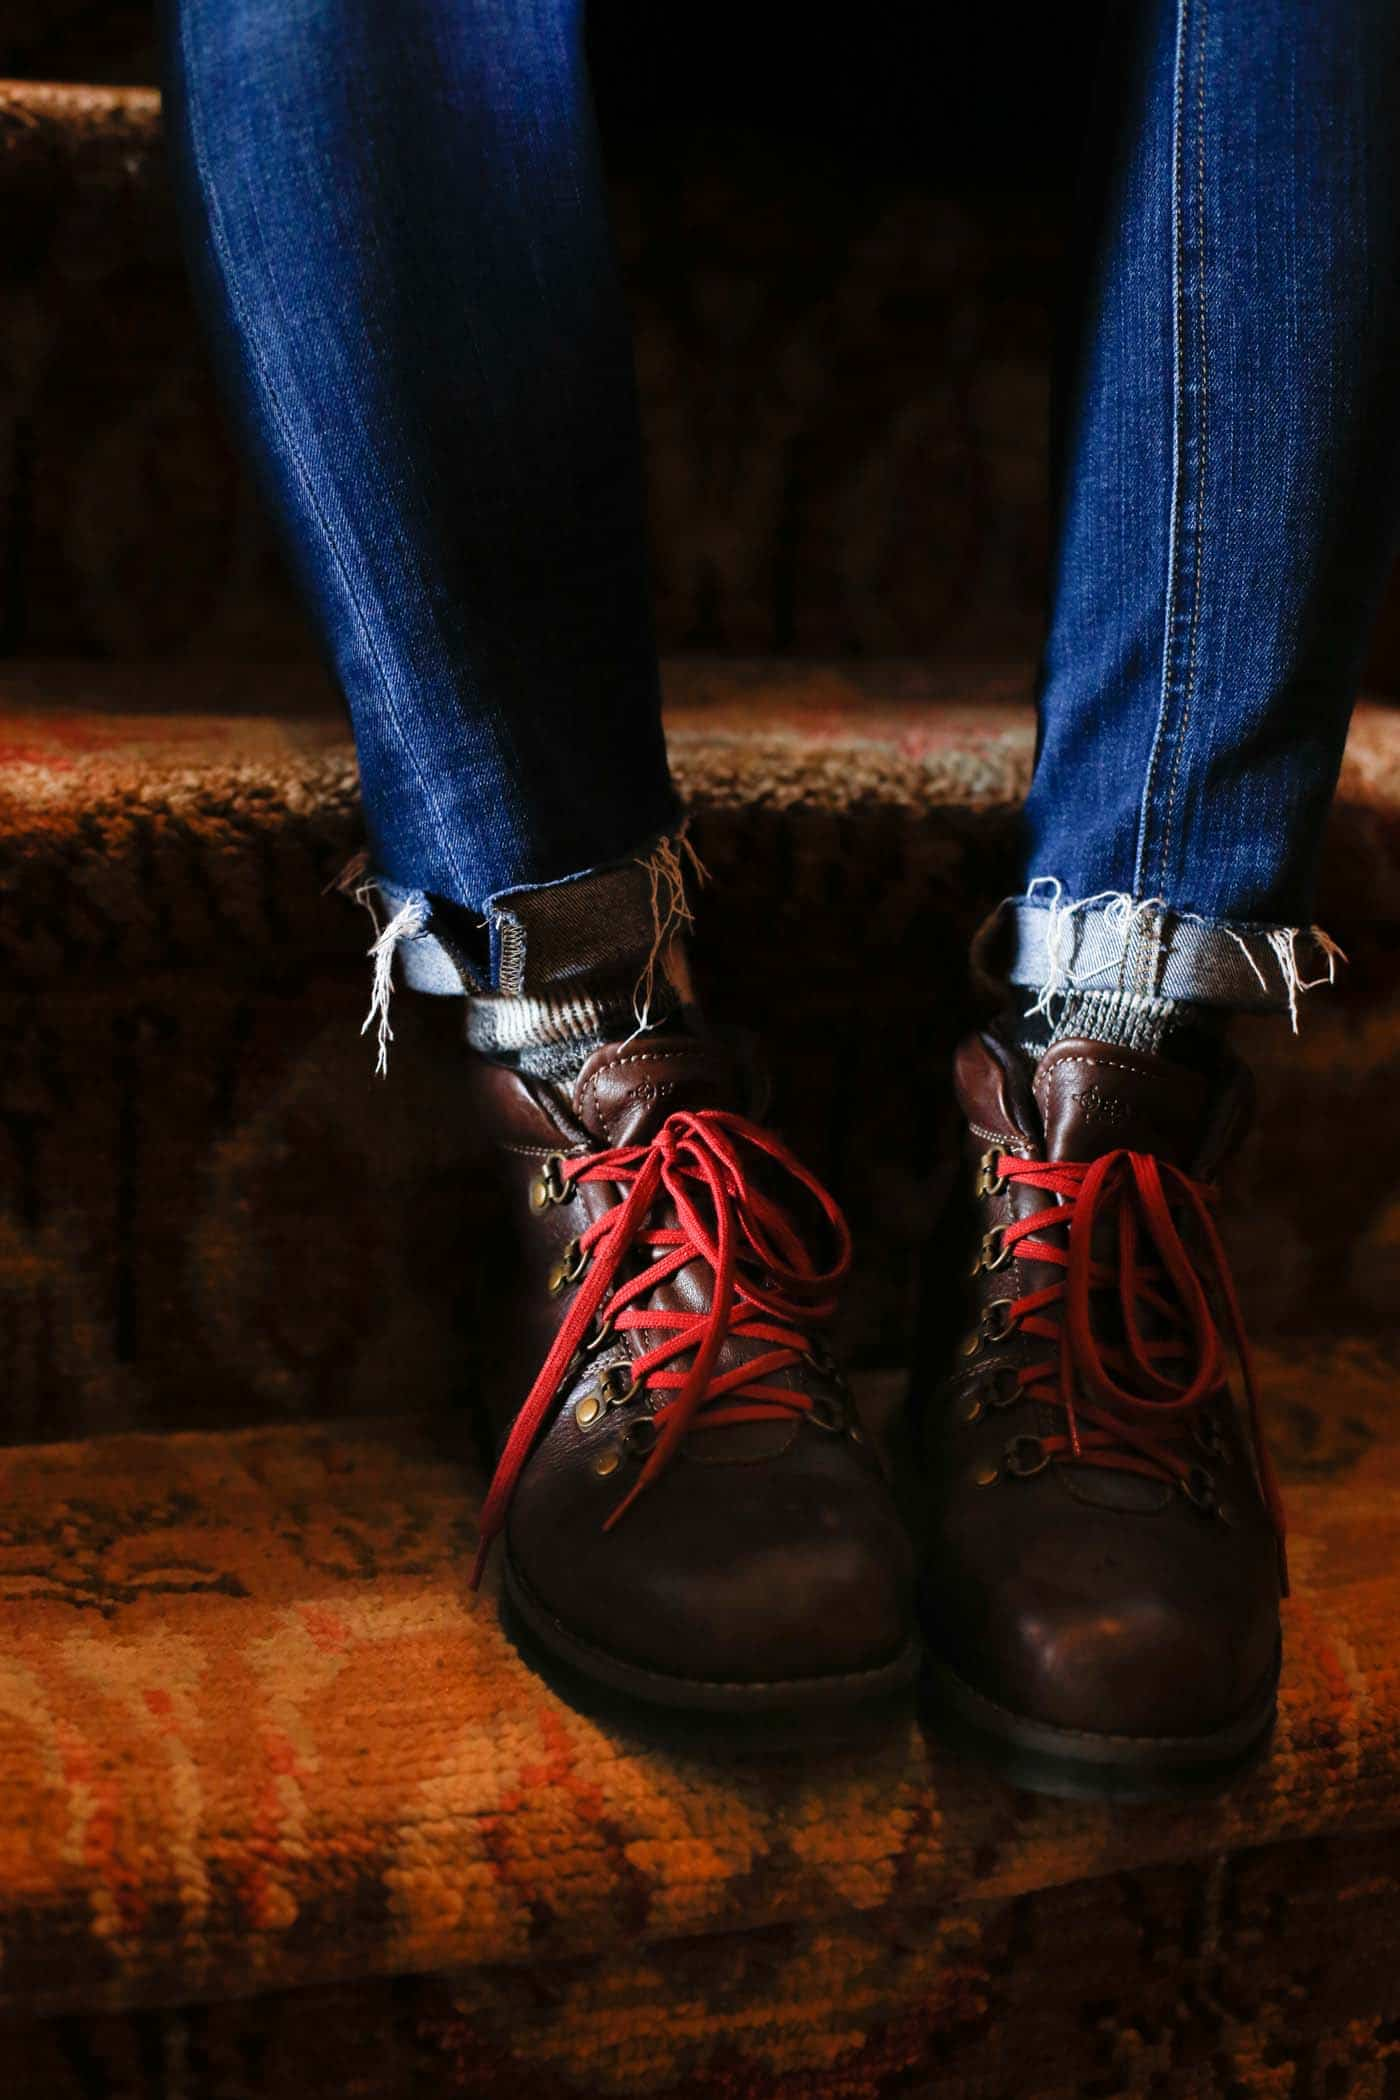 winter boots with red laces, jeans and boots, winter style - My Style Vita @mystylevita